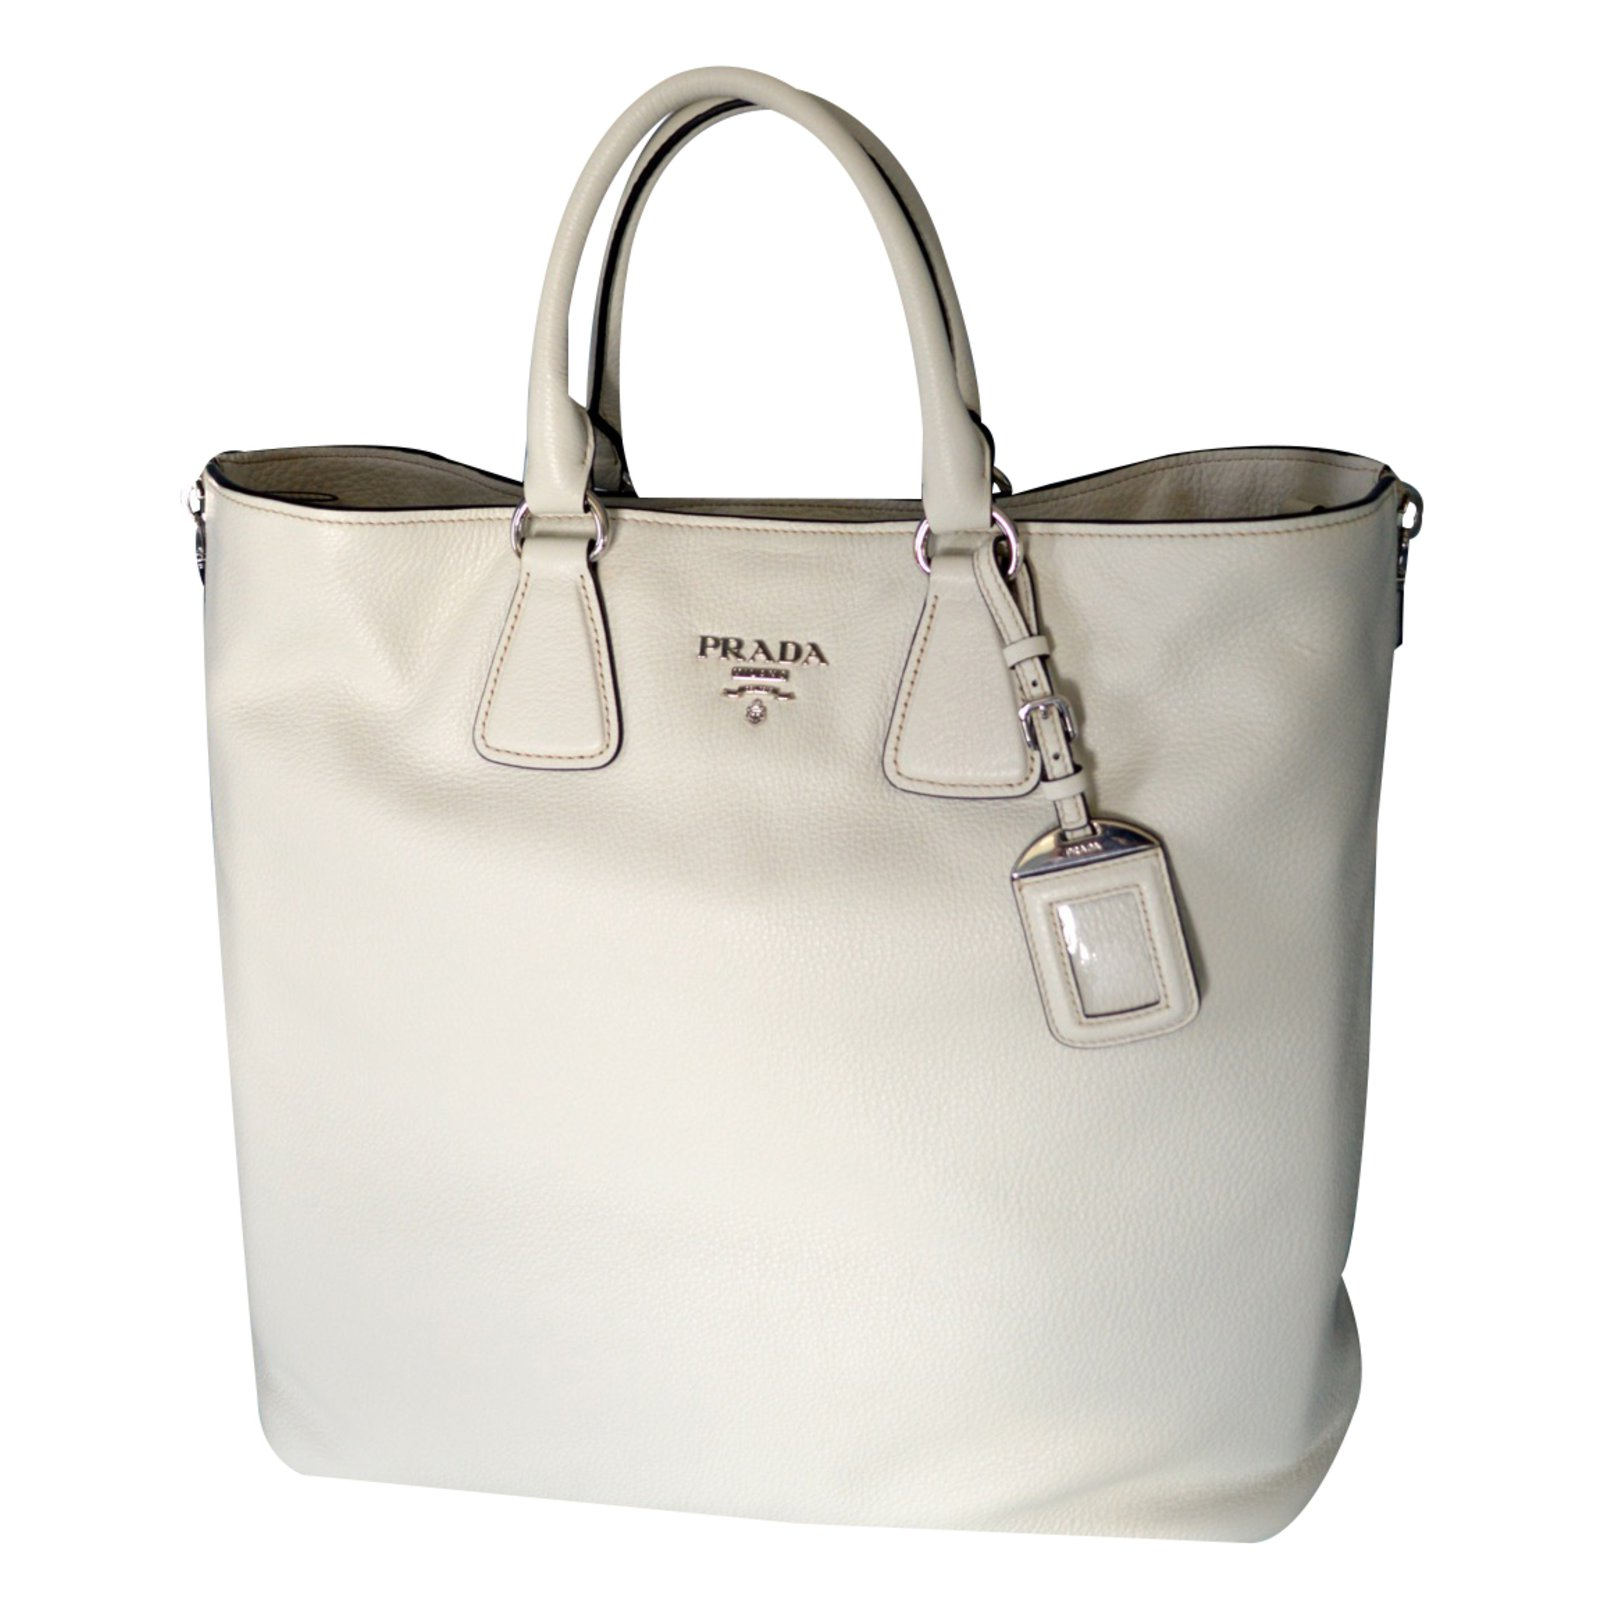 Prada Prada vitello phenix talco textured leather shopping tote bag bn2419  original Handbags Leather White ref c5481335241c8